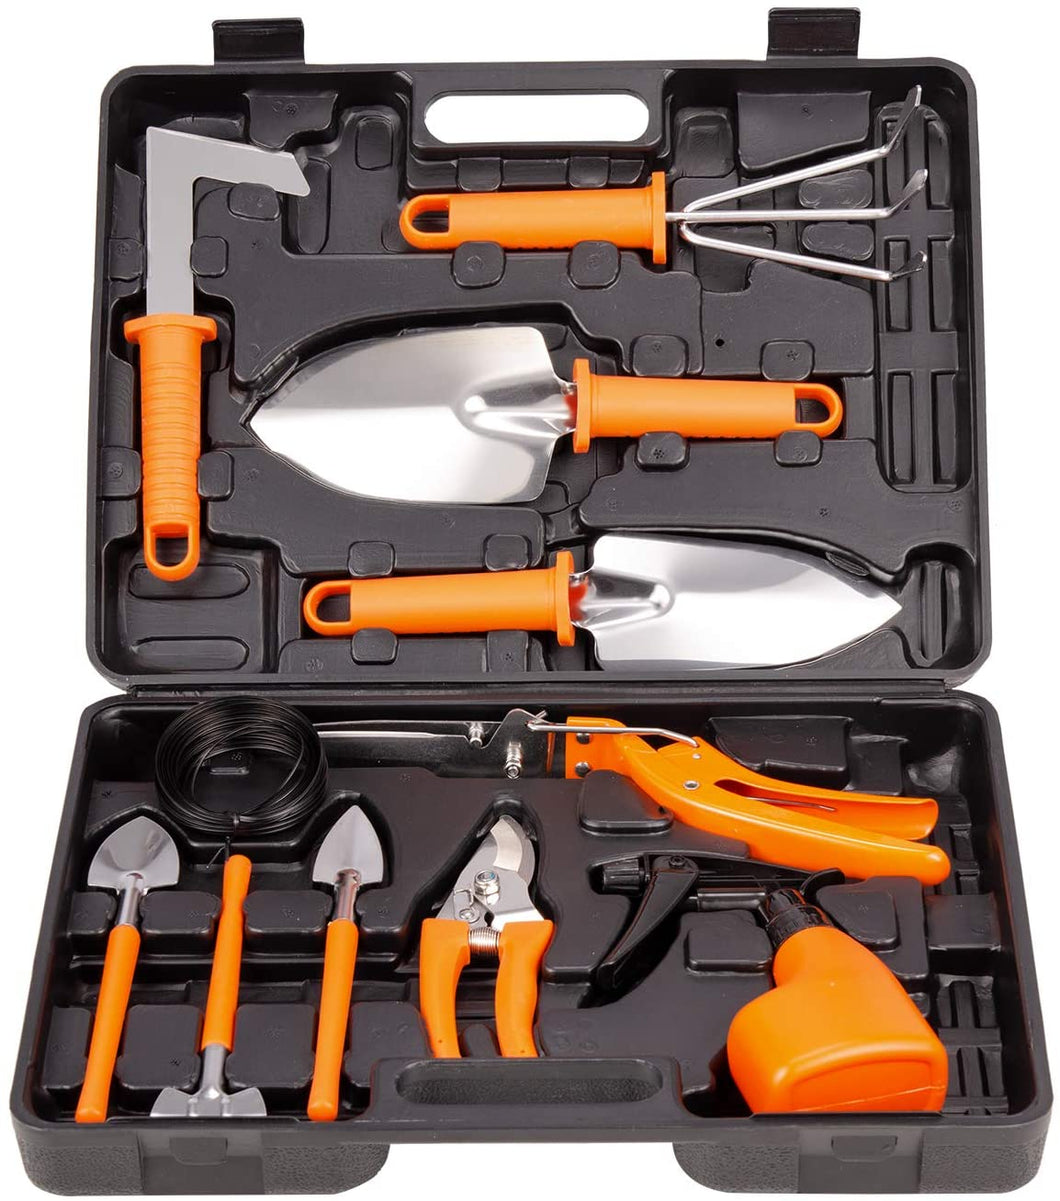 12 Piece Gardening Gifts Stainless Steel Garden Tool Set with Storage case.